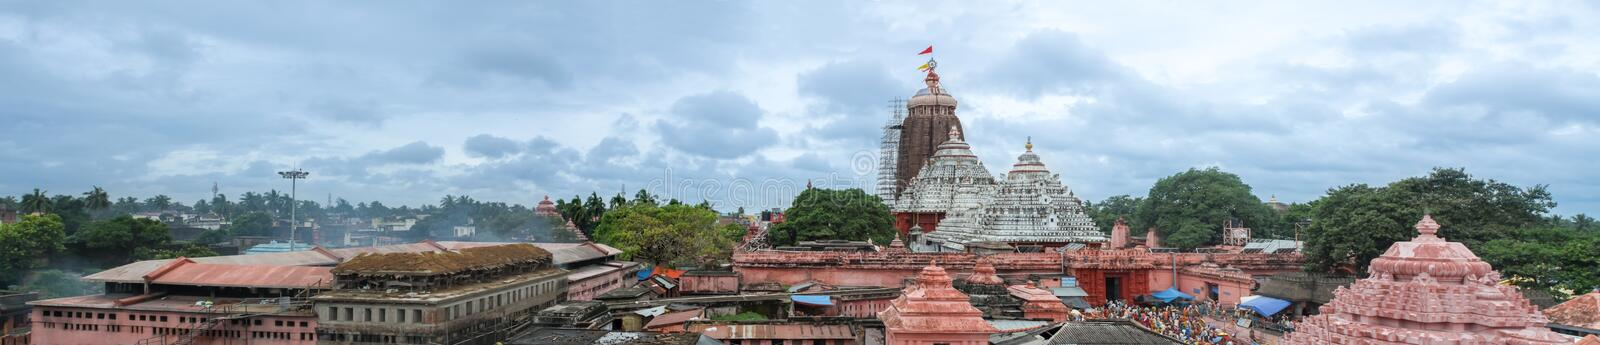 Jagannatha Temple in Puri stockfoto